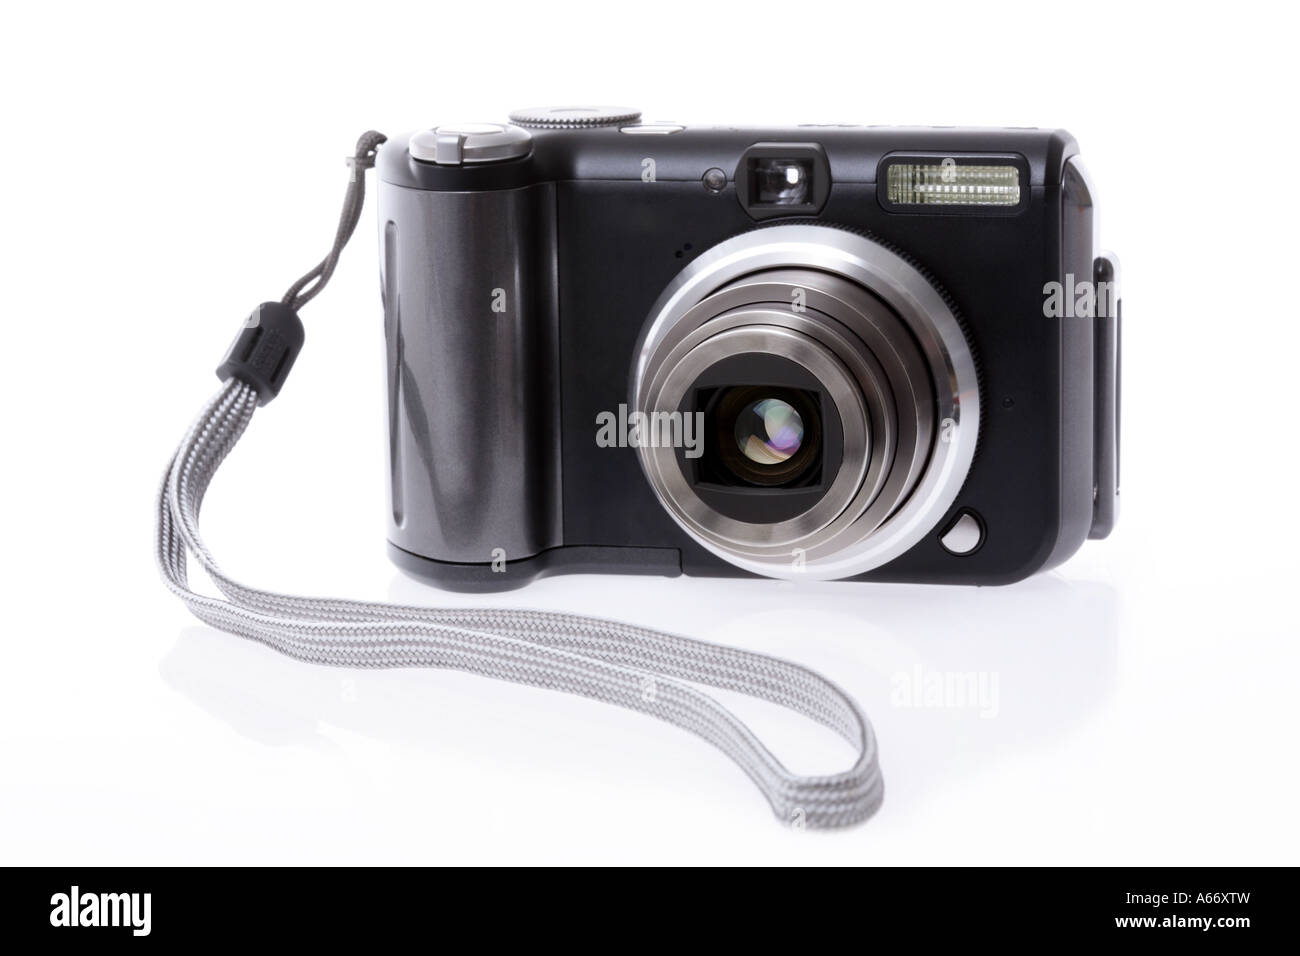 Digital camera cut out on white background - Stock Image